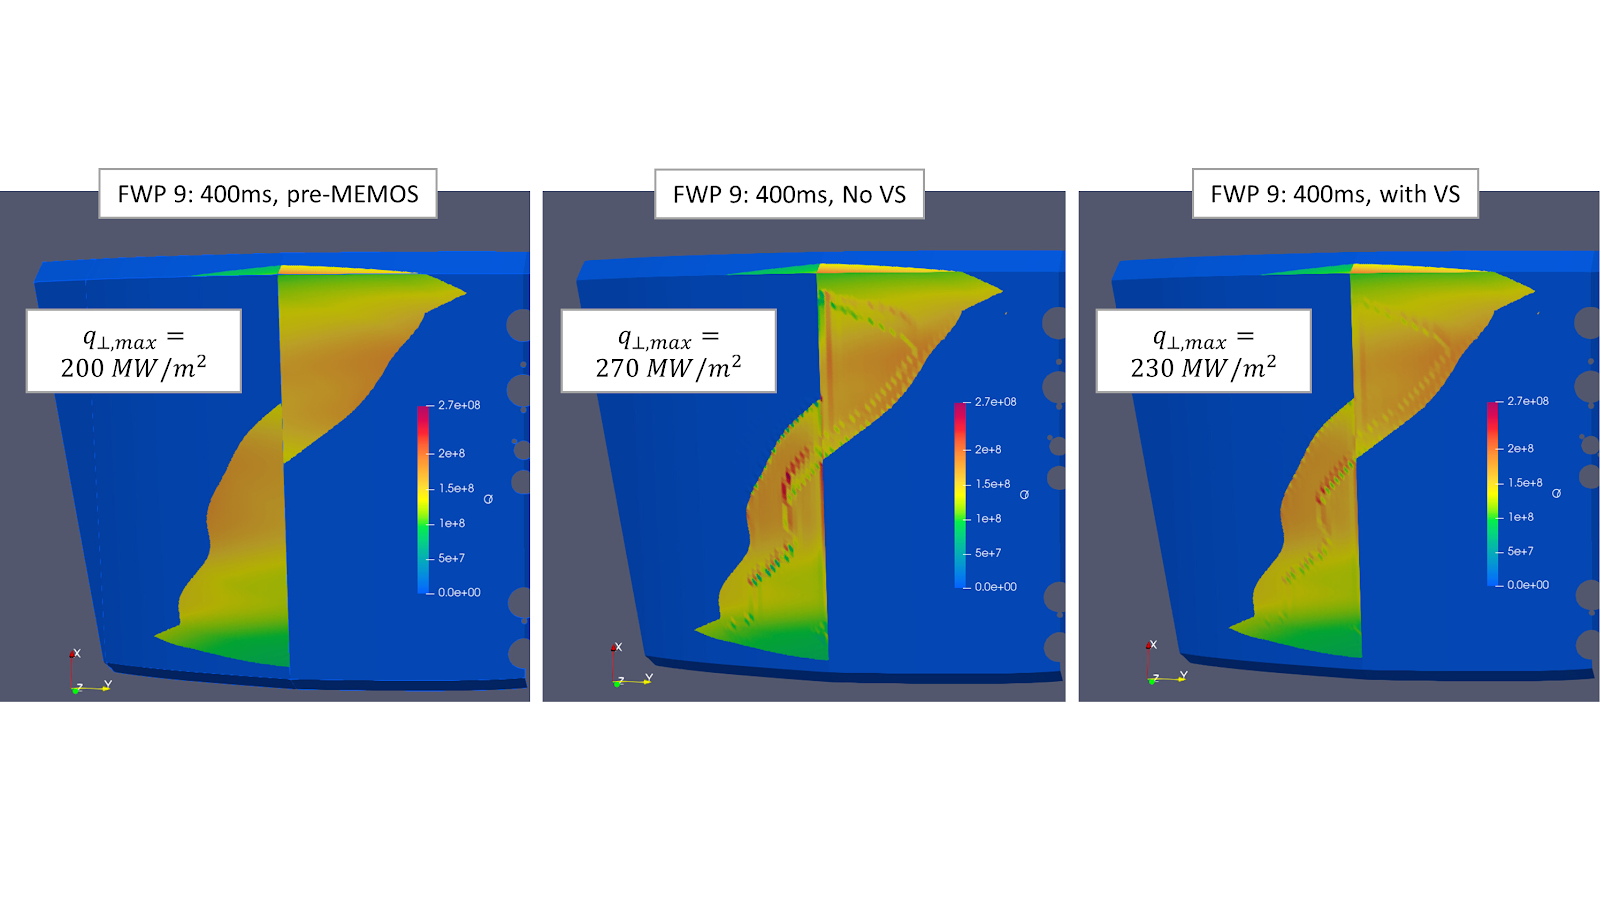 Maps of $q_\perp$ on FWP 9 at the worst-case time-step of an upward VDE. (Left) $q_\perp$ on pristine panel geometry. VDE maps of $q_\perp$ rendered onto a panel surface deformed from a prior VDE scenario, where melt deformation is calculated in MEMOS-U without (Middle) and with (Right) vapor shielding.